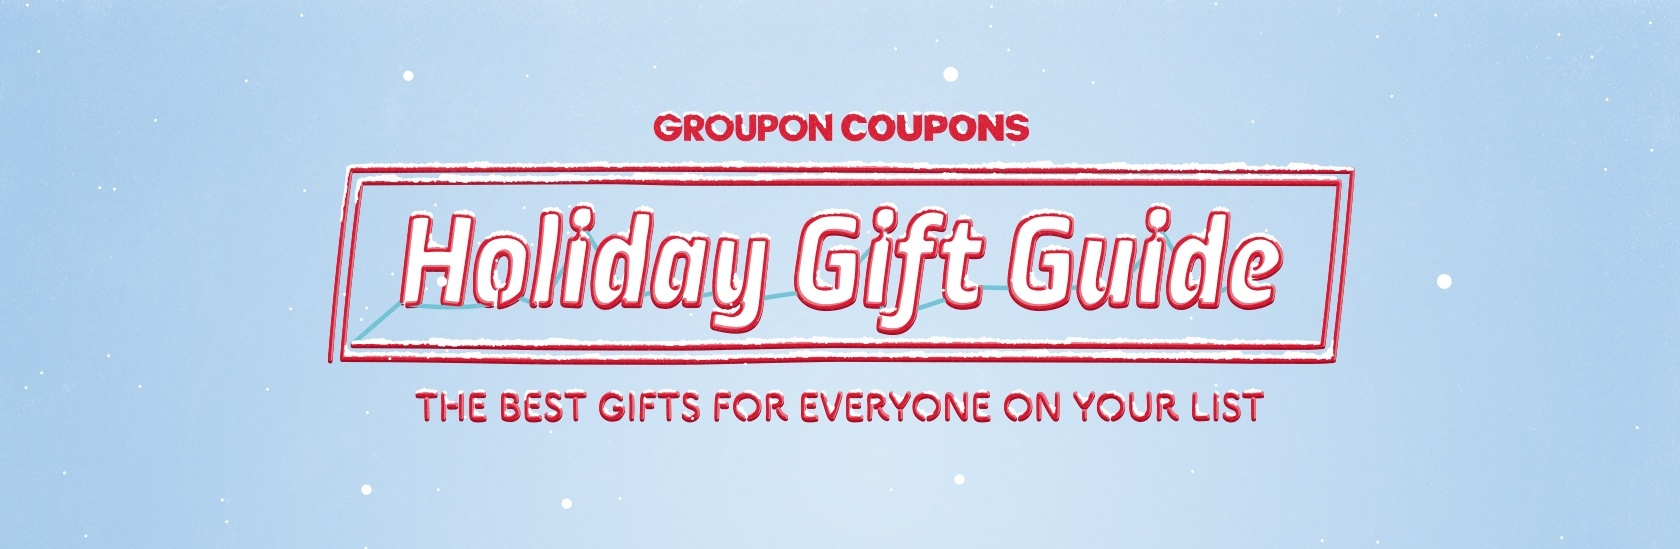 Groupon Coupons Holiday Gift Guide